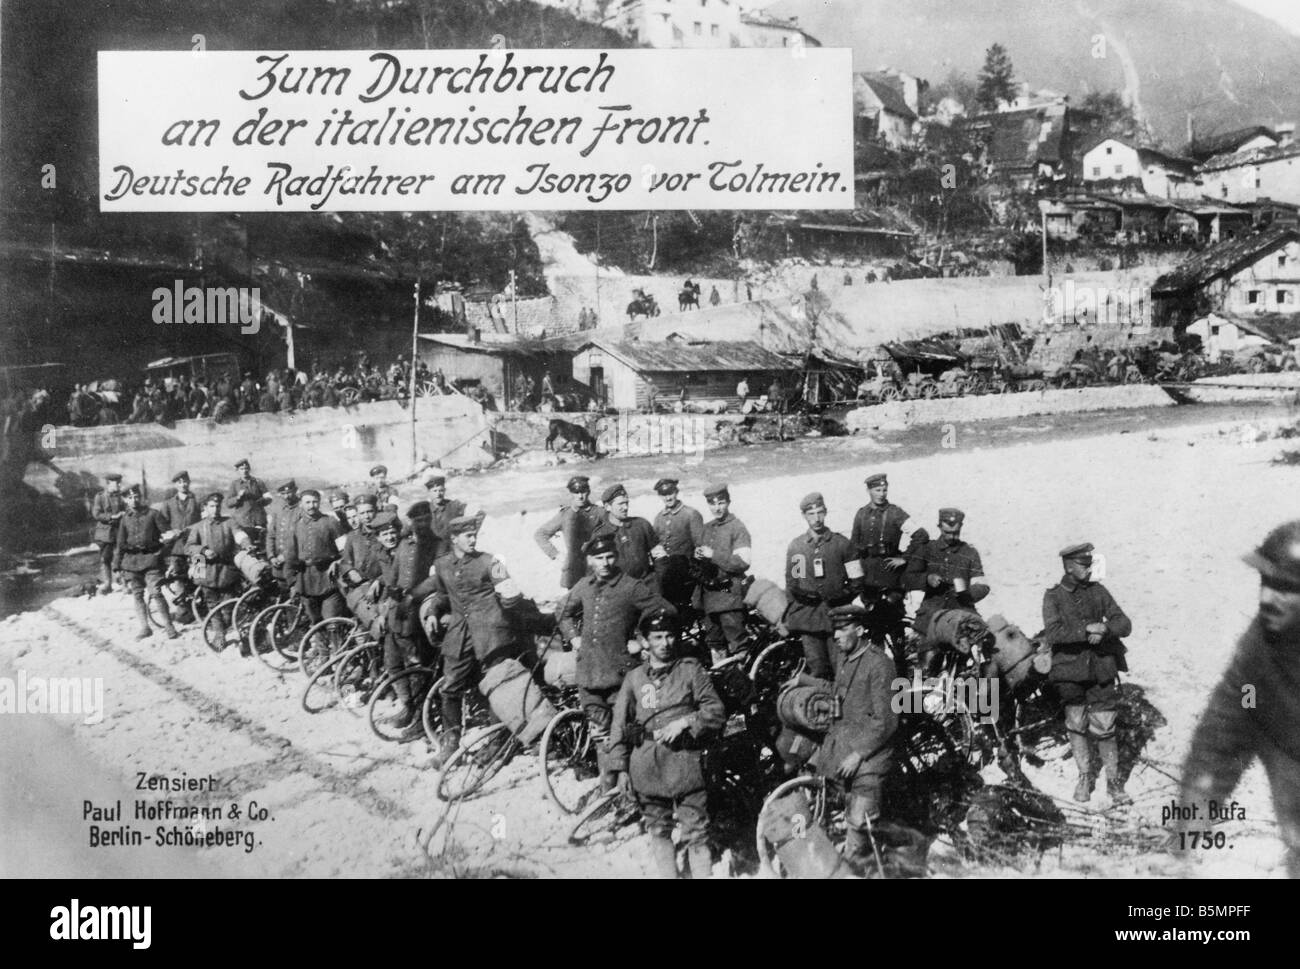 9 1915 0 0 A3 2 E Isonzo battles Ger troops at Tolmein World War 1 Italian Front Isonzo battles 1915 17 Battles - Stock Image